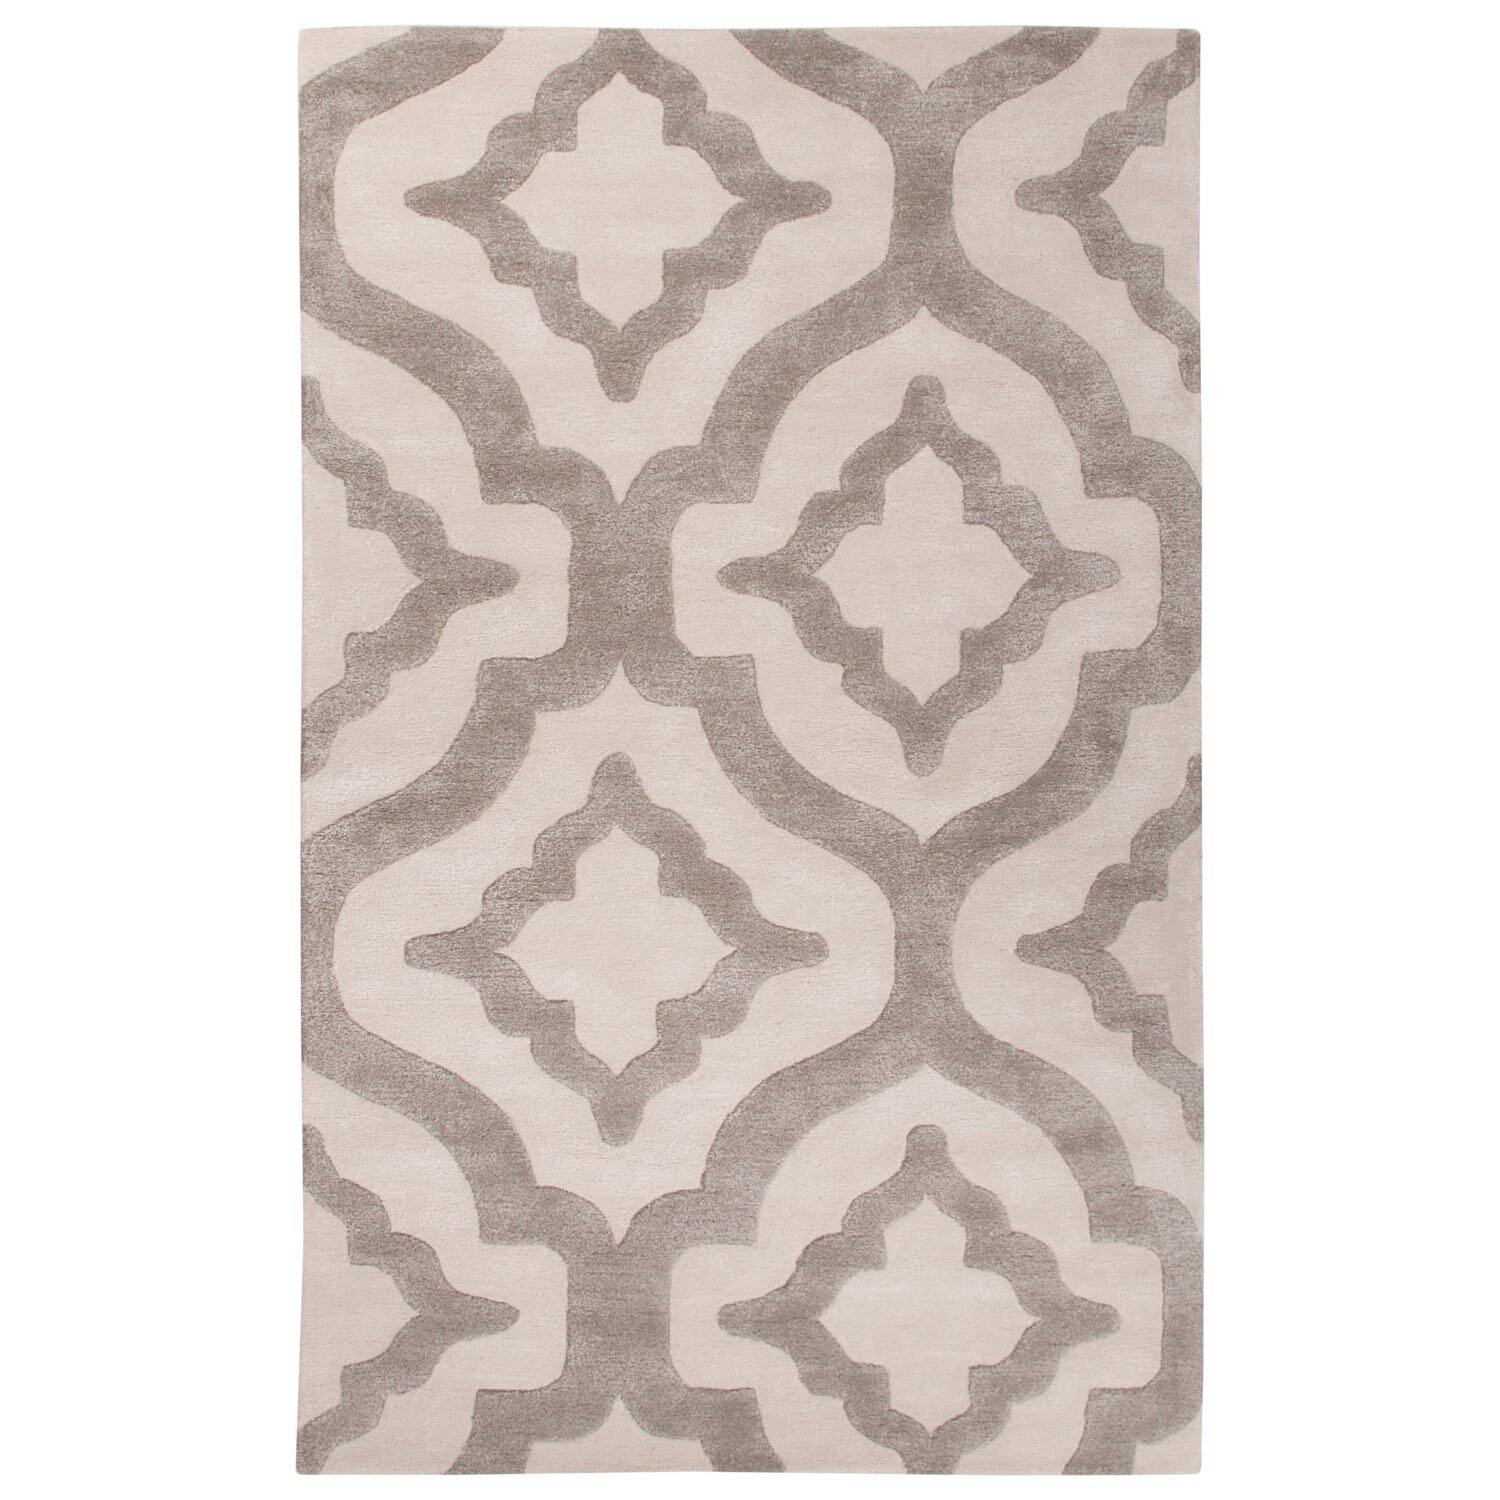 Jaipurliving city hand tufted ivory white area rug wayfair for White area rug